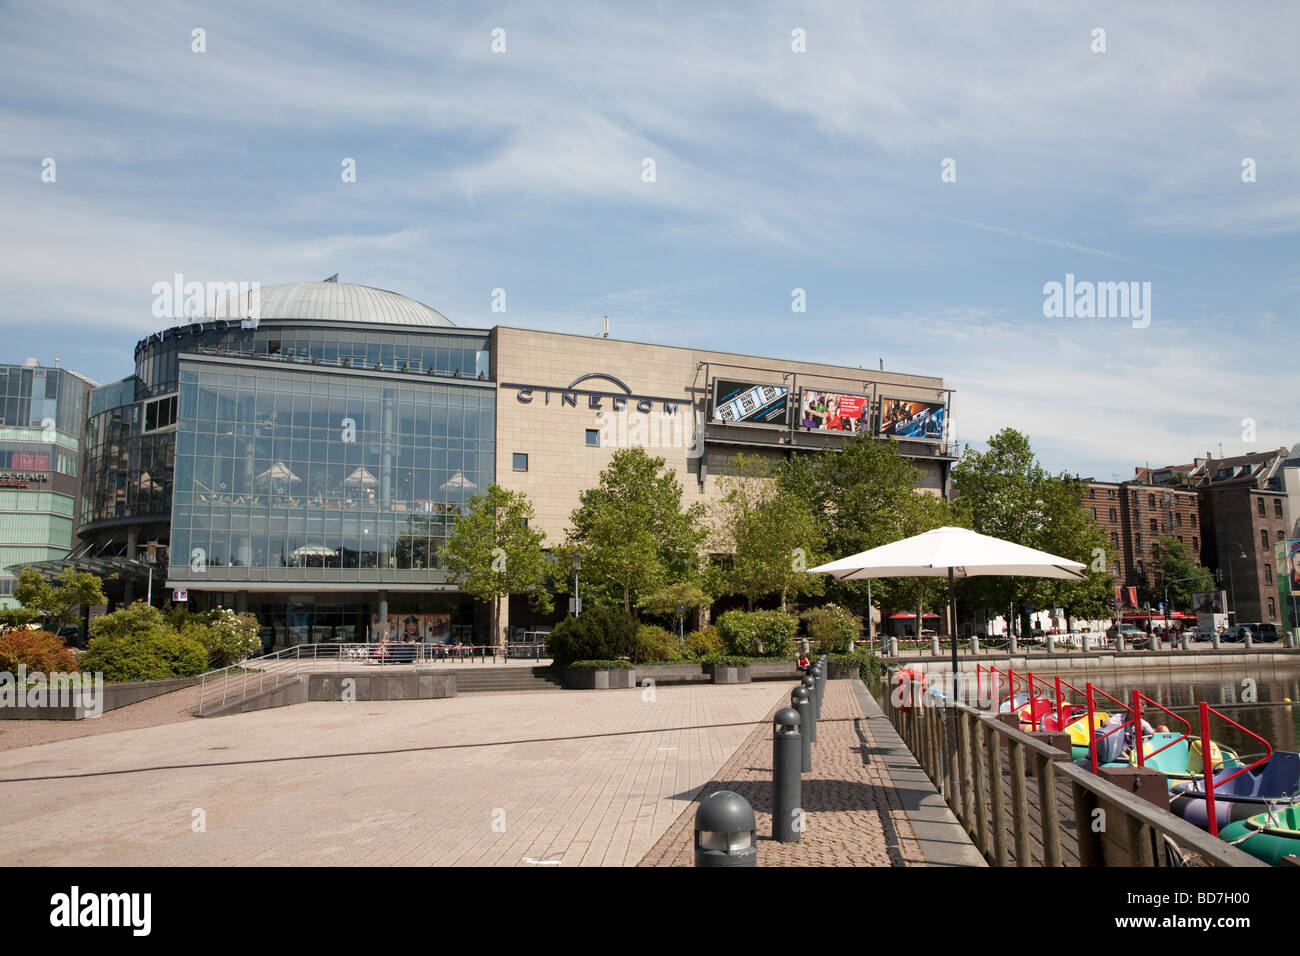 Cinedom cinema multiplex in Cologne Germany - Stock Image